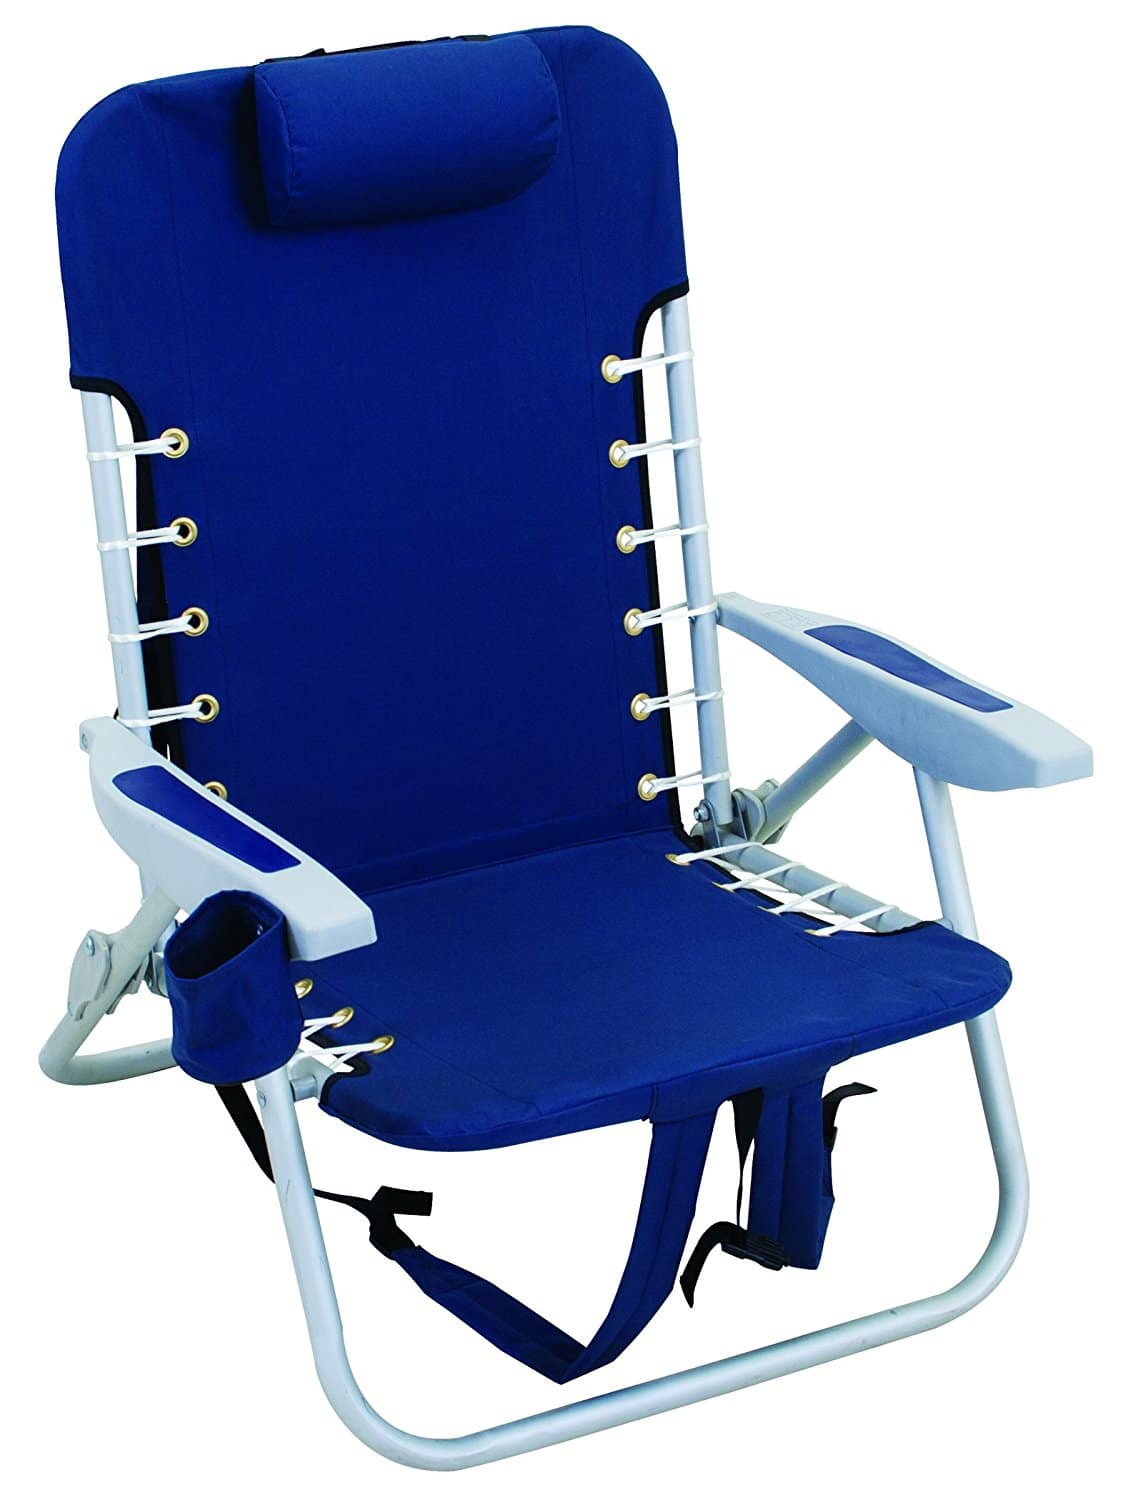 Top 10 Best Beach Chairs in 2019 Review